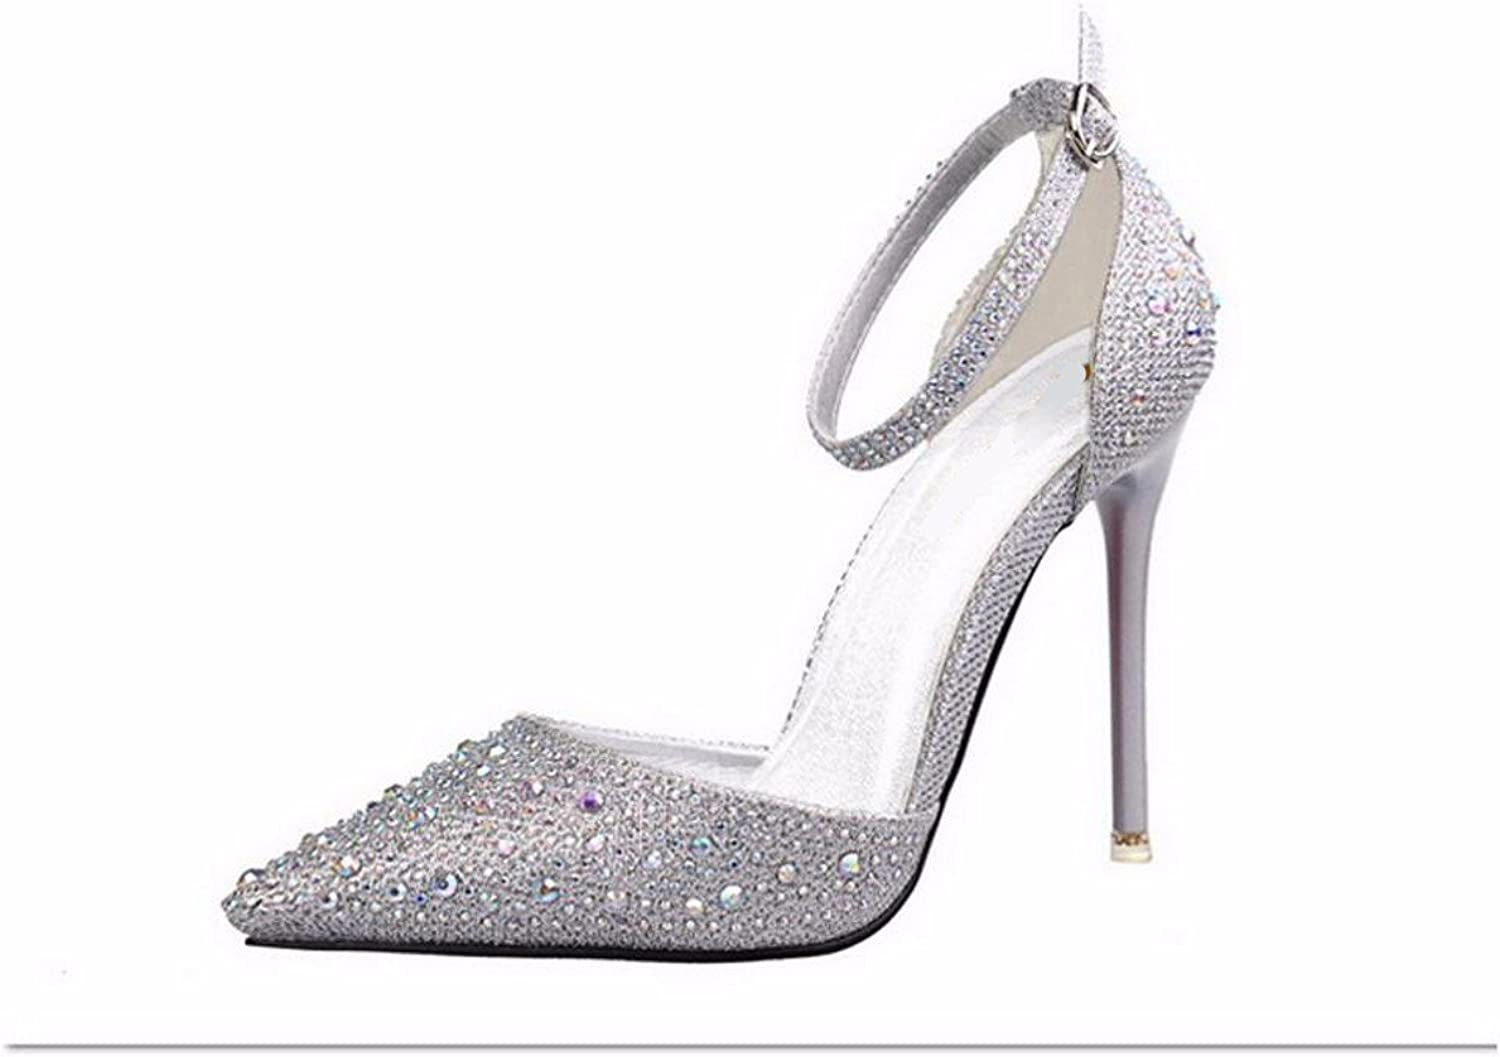 GTVERNH Women's shoes Summer Wild Crystal Pointed Buckles High Heels Sandals Girls Simple Thin Sexy shoes.